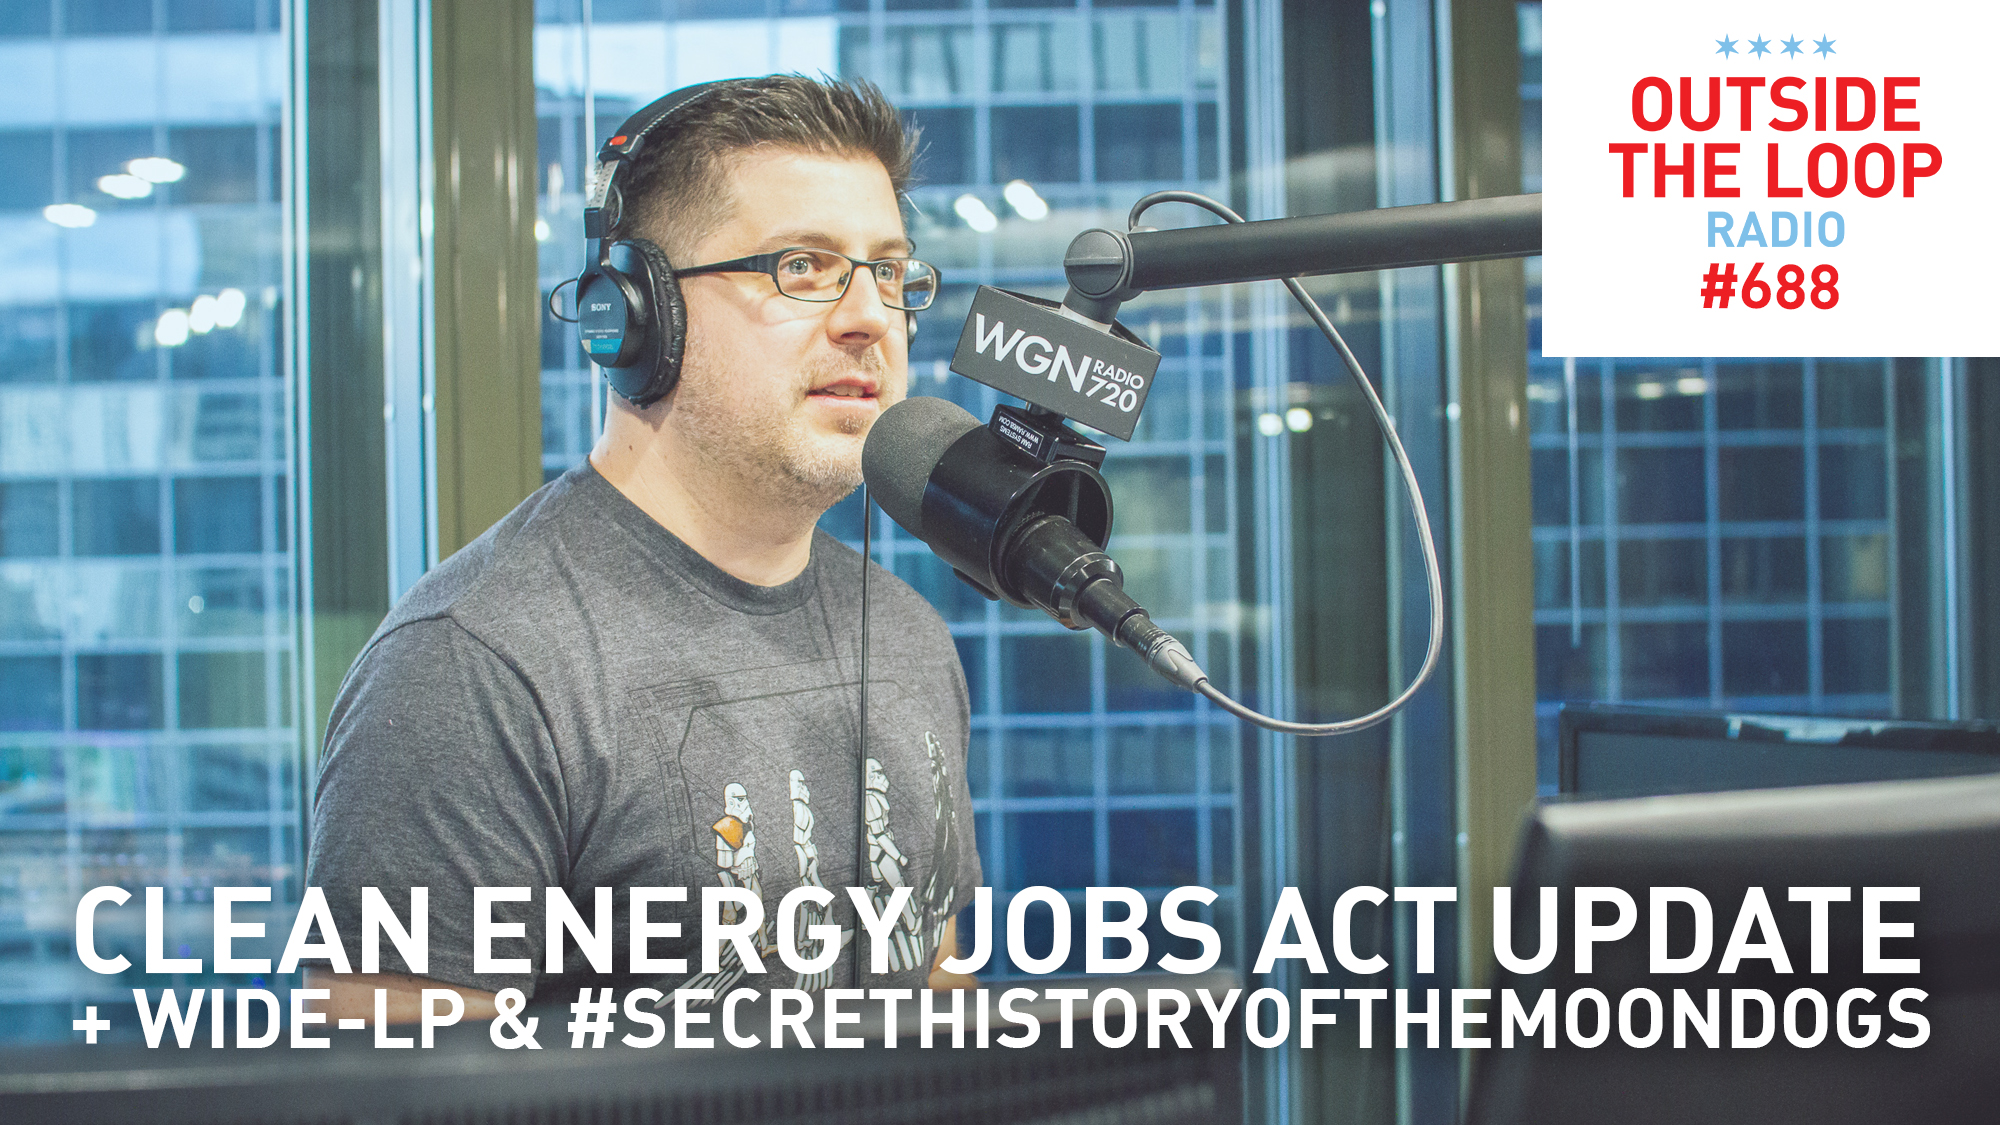 Mike Stephen discusses the Clean Energy Jobs Act.